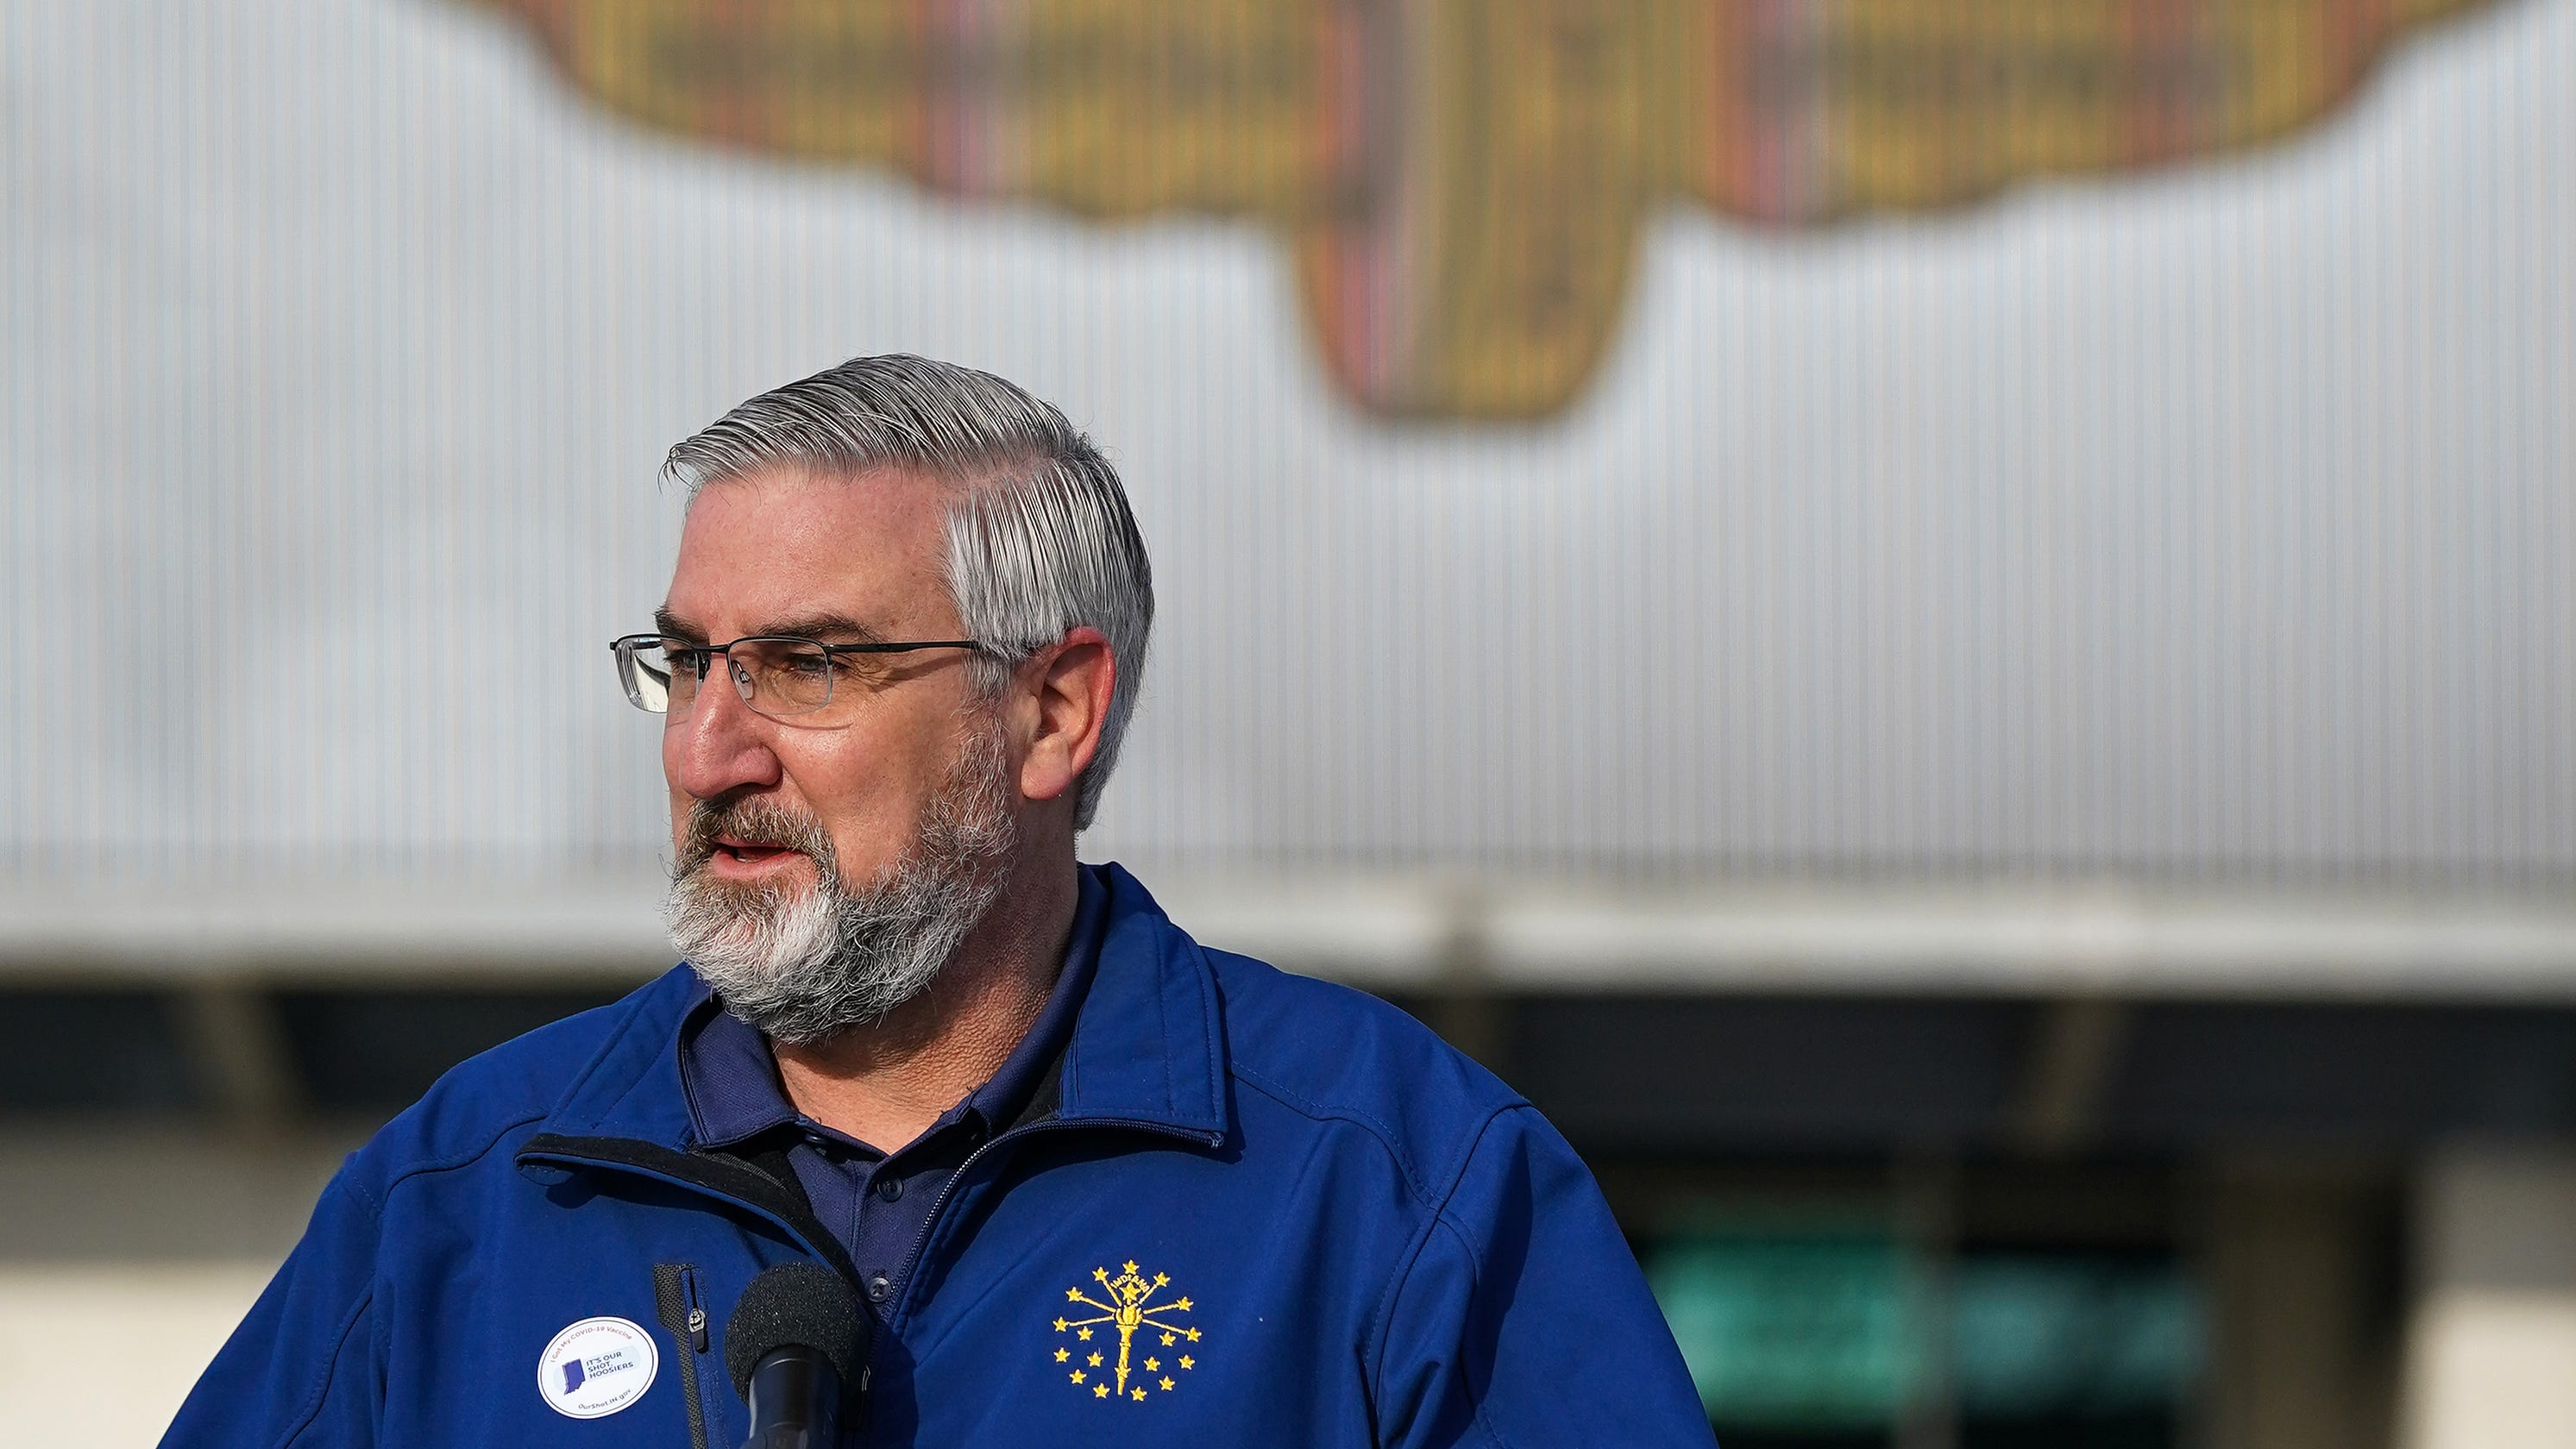 Gov. Holcomb, IMS president Doug Boles echo hope of fans attending Indy 500 on May 30